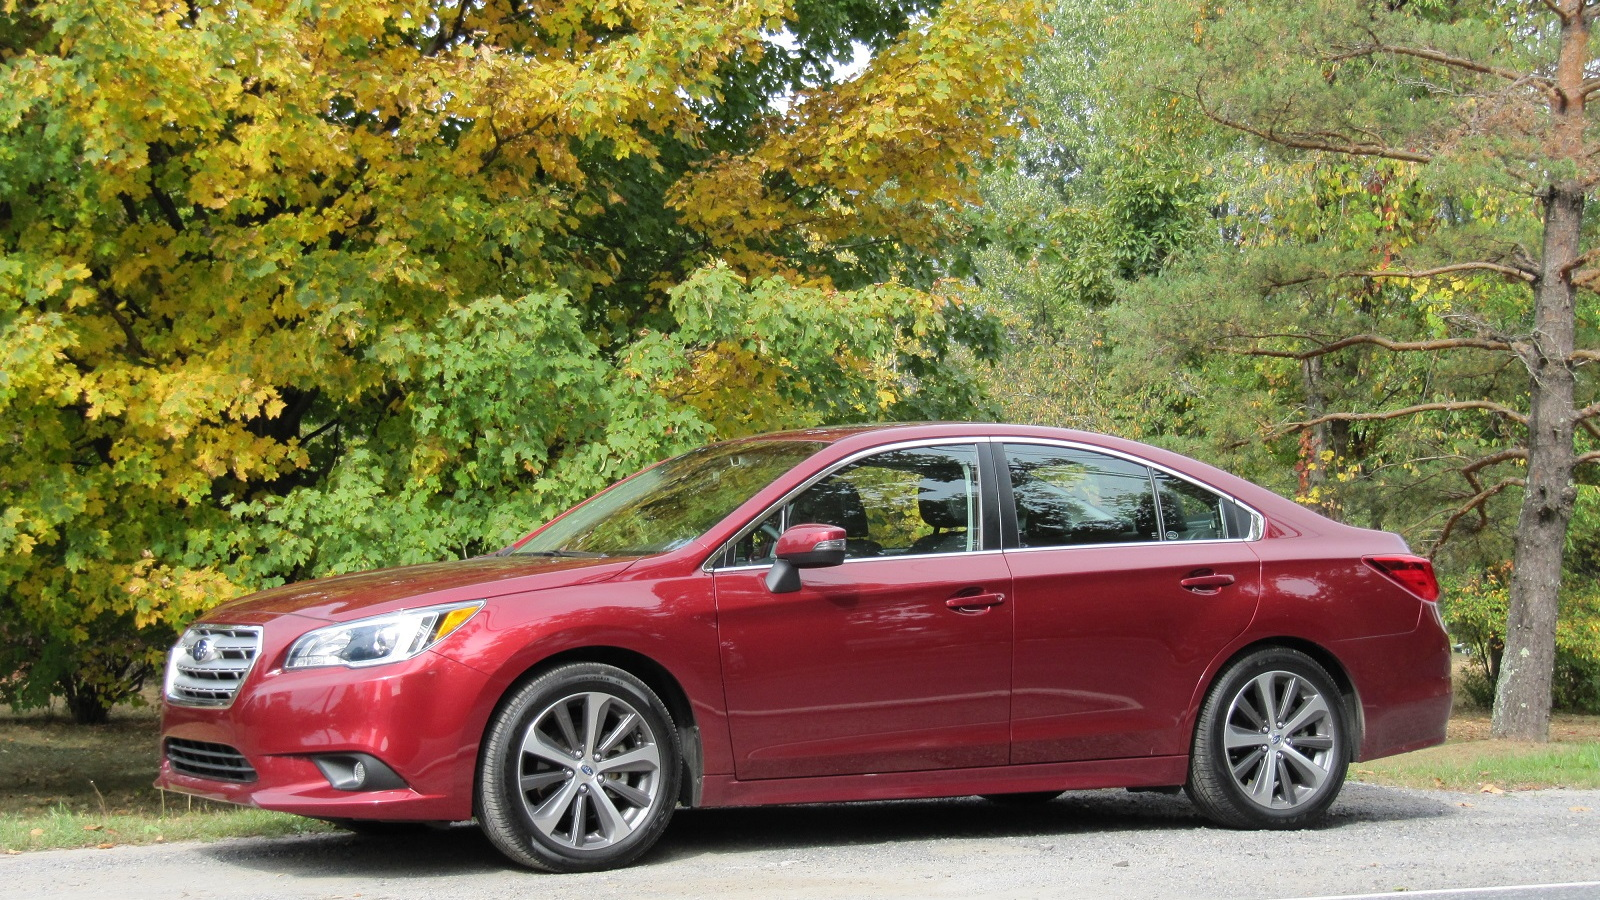 2015 Subaru Legacy Gas Mileage: We Test Both 2 5i And 3 6R